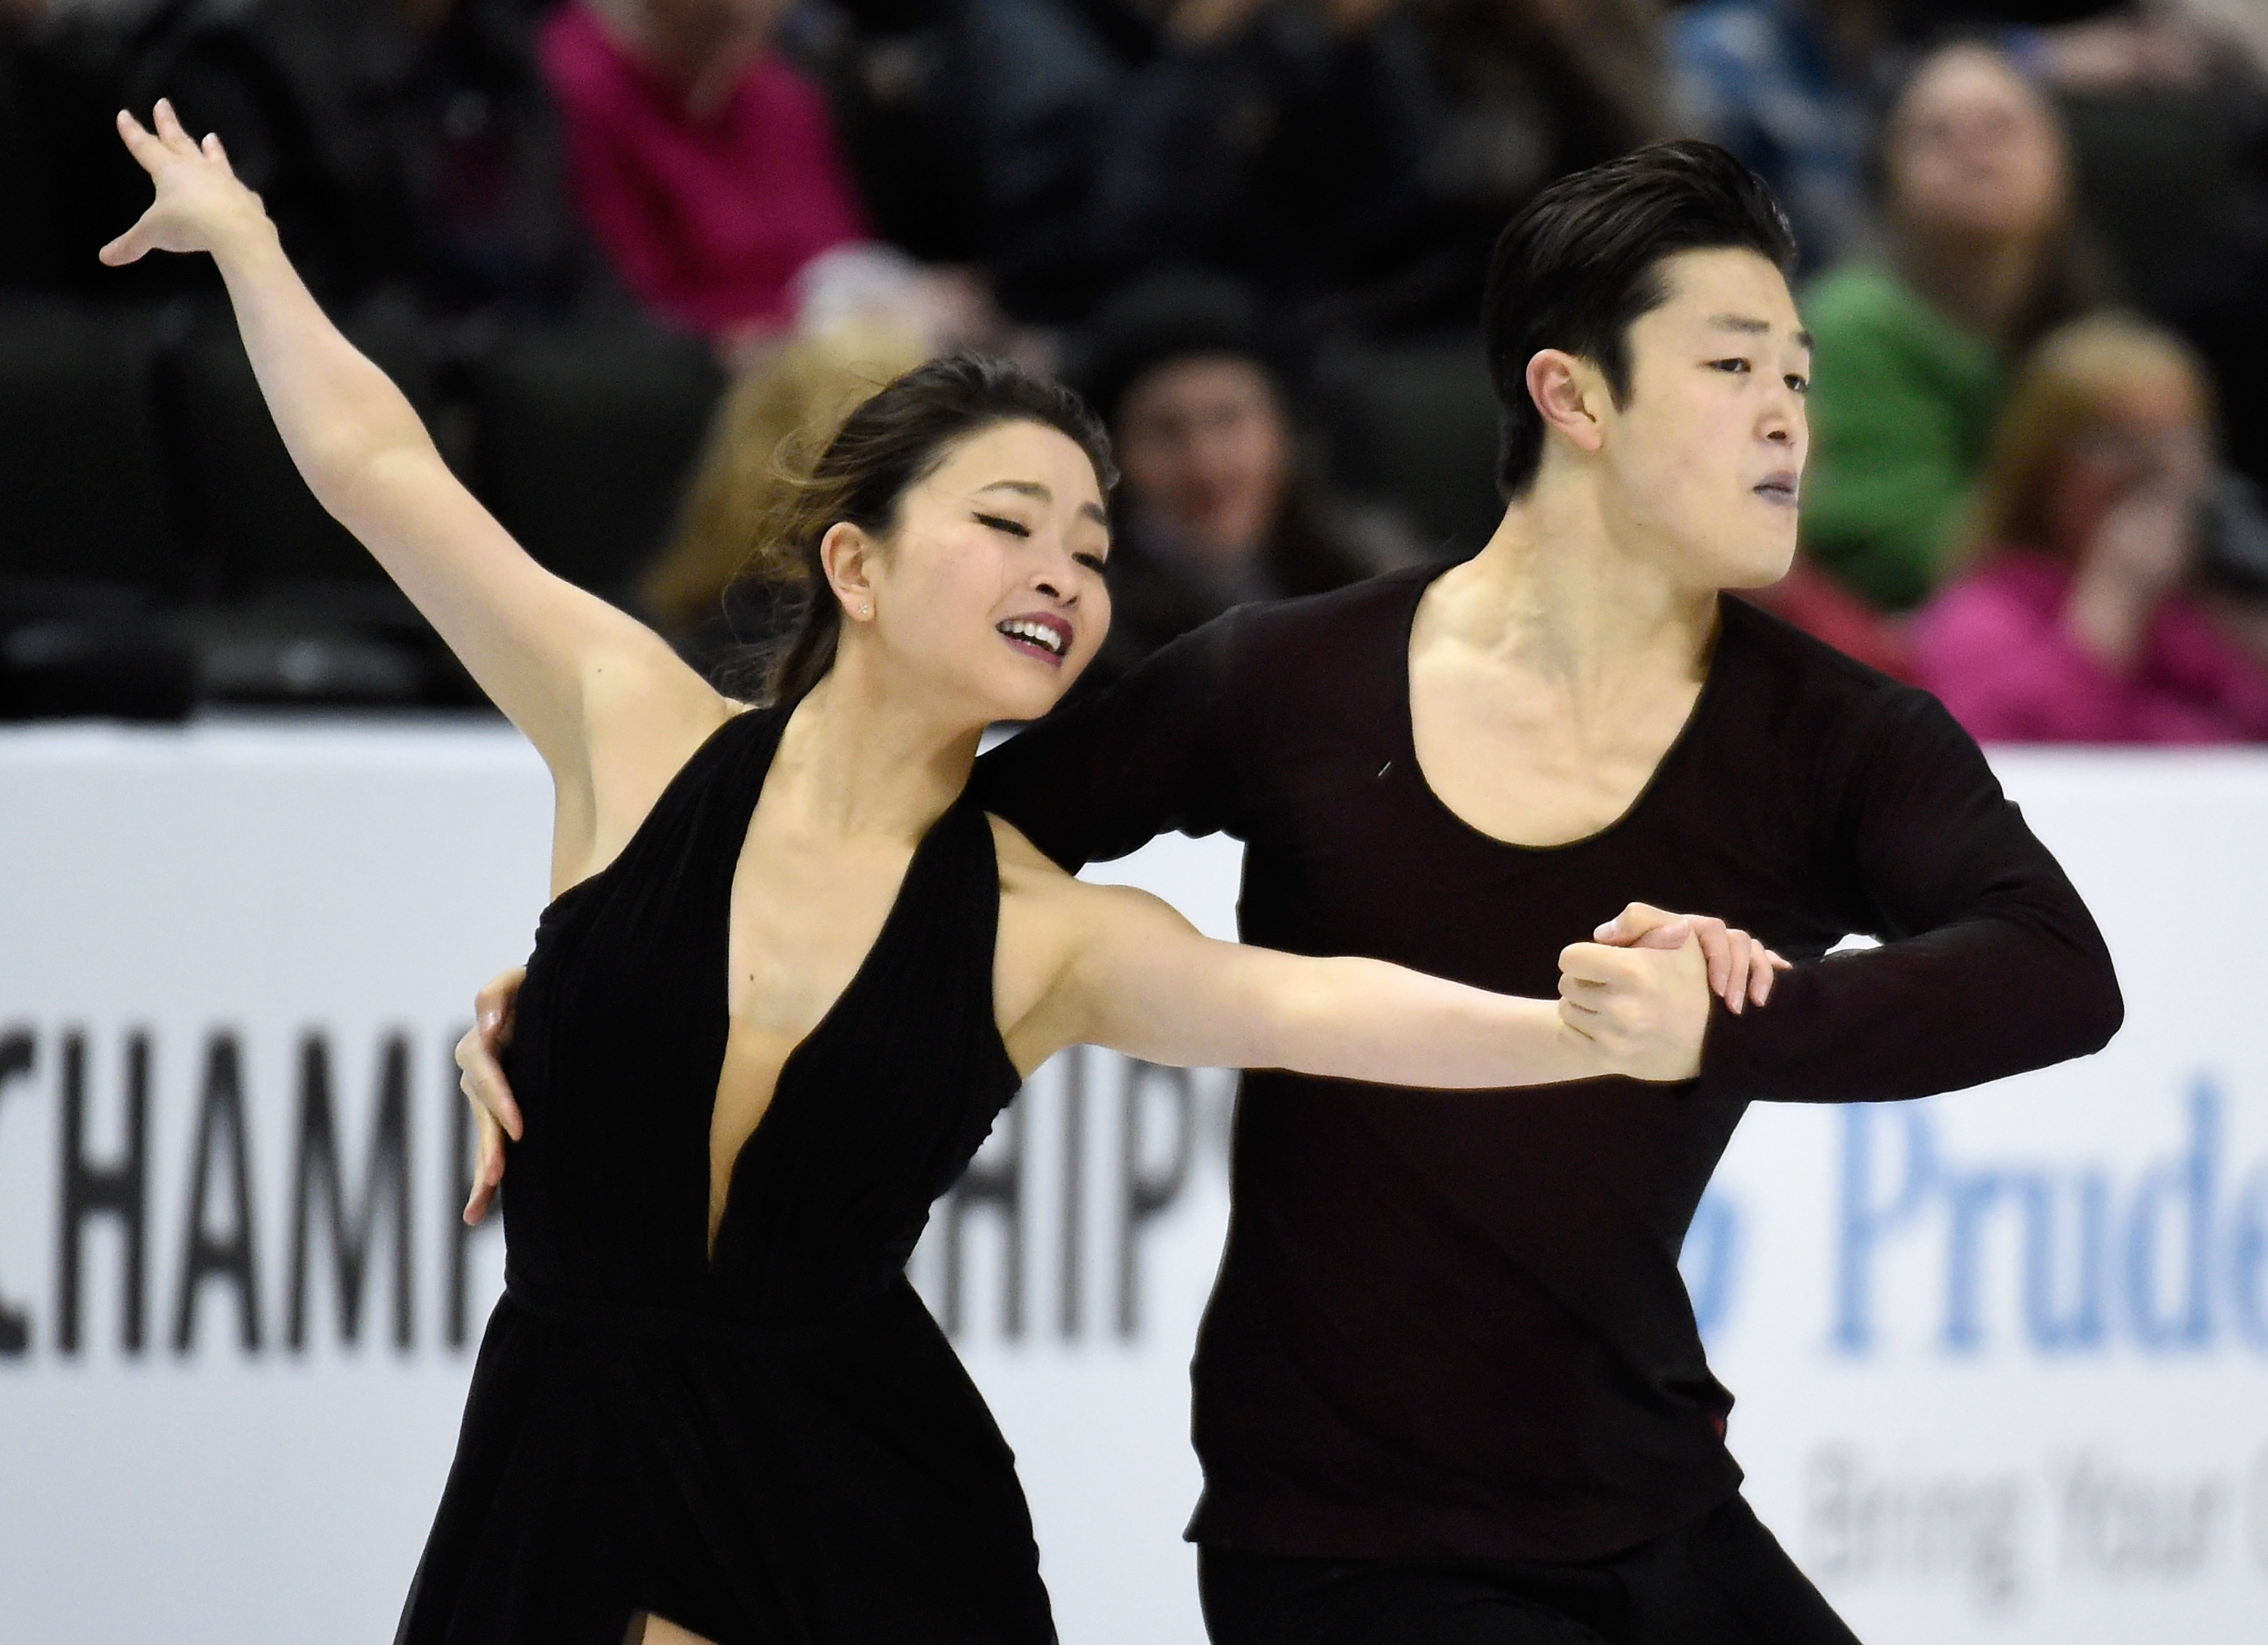 maia shibutani instagram - photo #47